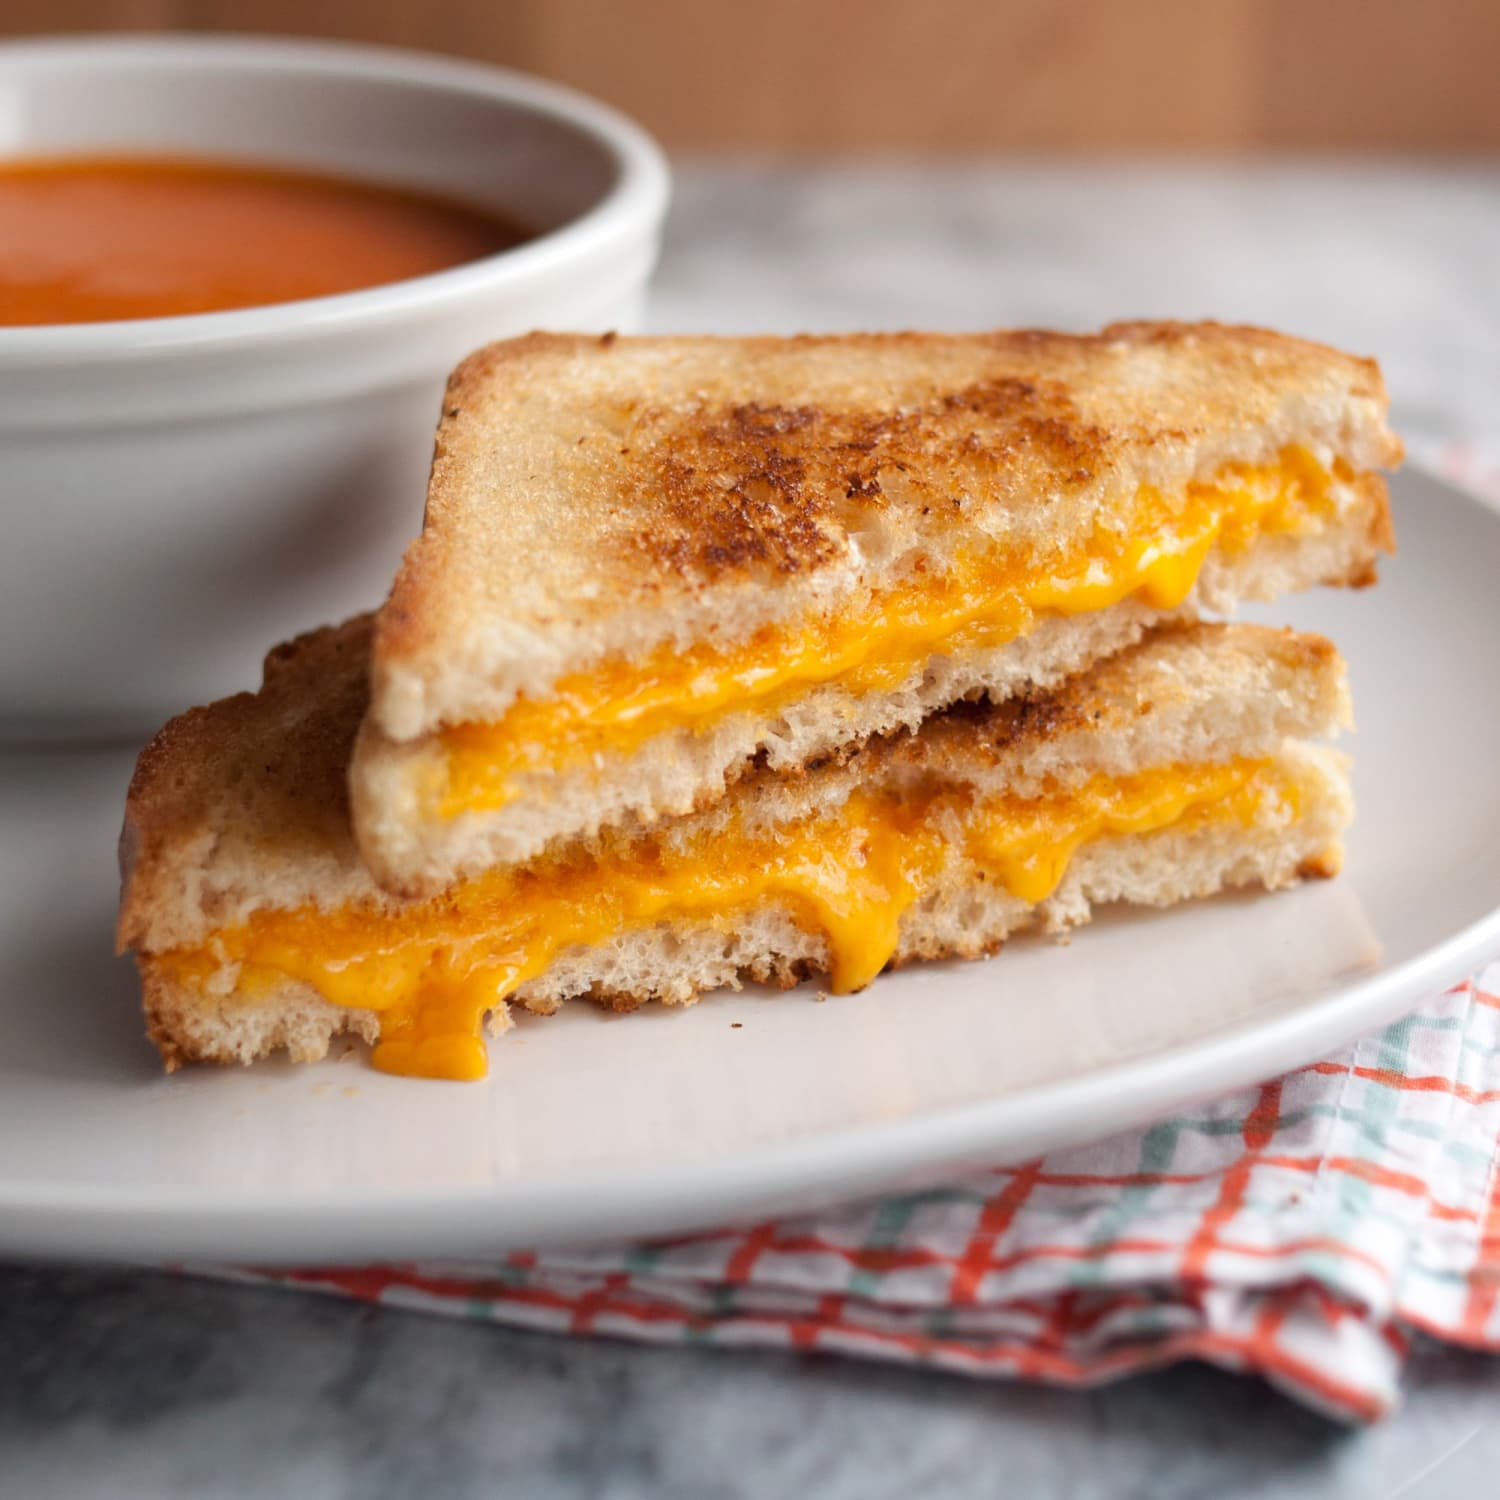 How To Make A Fantastic Grilled Cheese Sandwich